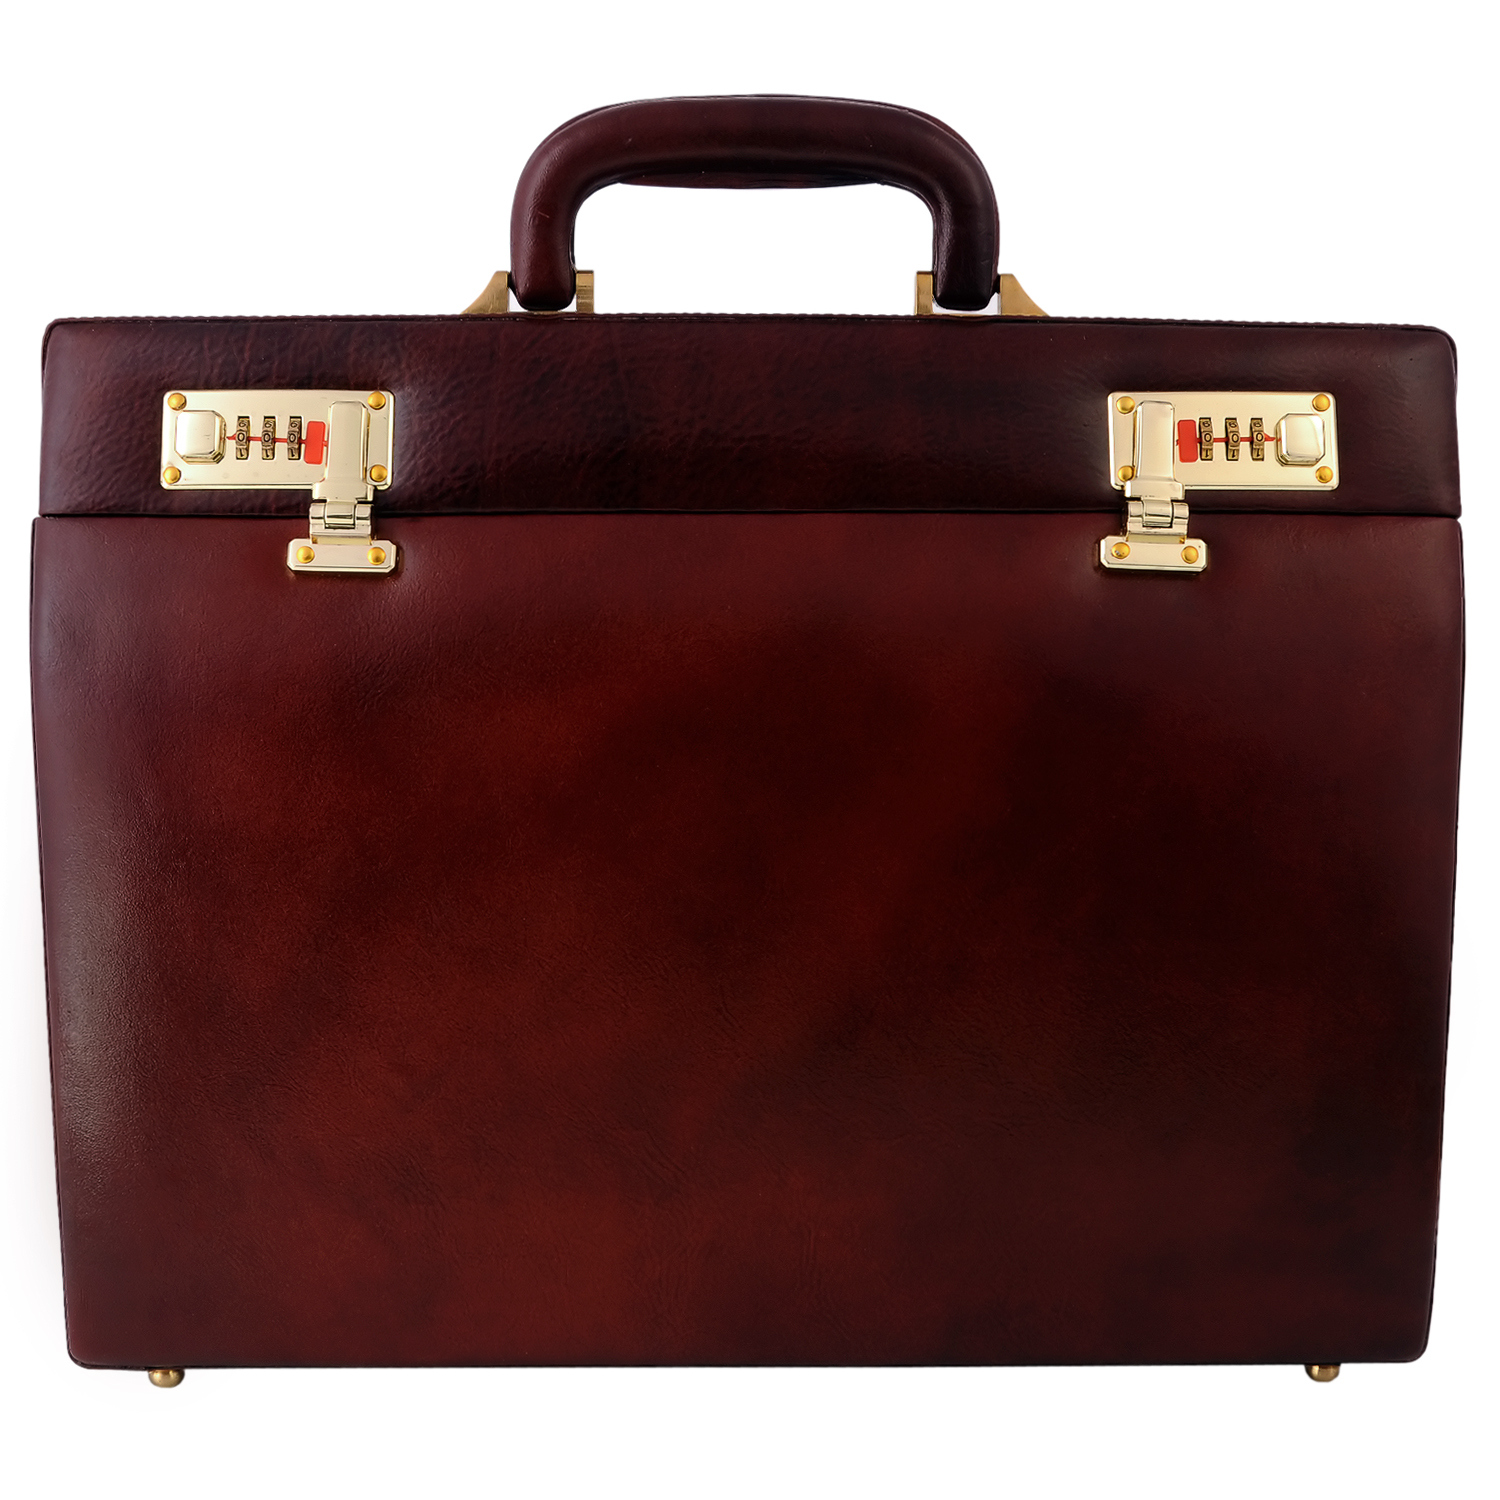 Hard Case Genuine Leather Brown Briefcase